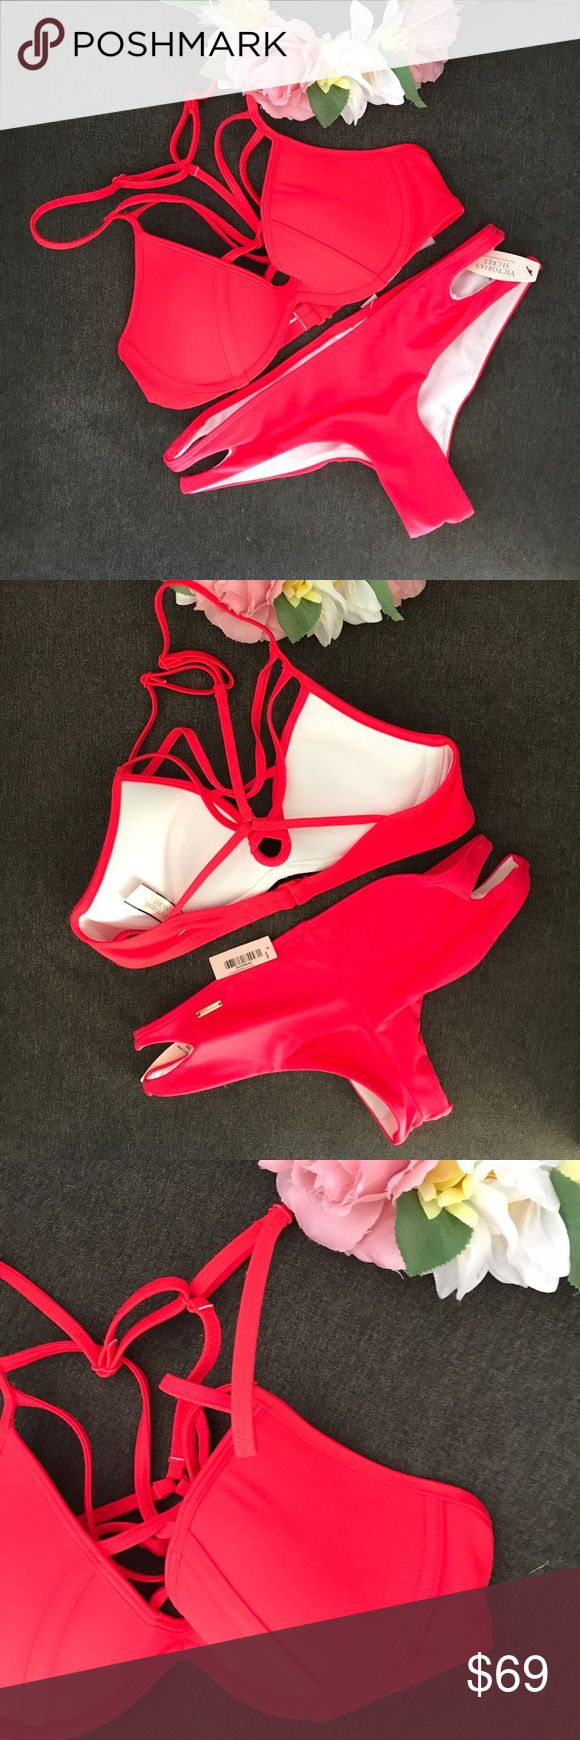 Victoria secret red madness swim set XS Brand new. Only selling as a set. Do not ask for separates. Both are size XS. Top front criss crossing and bottoms side cut out details. Super cute and sexy. Look for my other swim sets. Soak up the sun. ☀️ Victoria's Secret Swim Bikinis